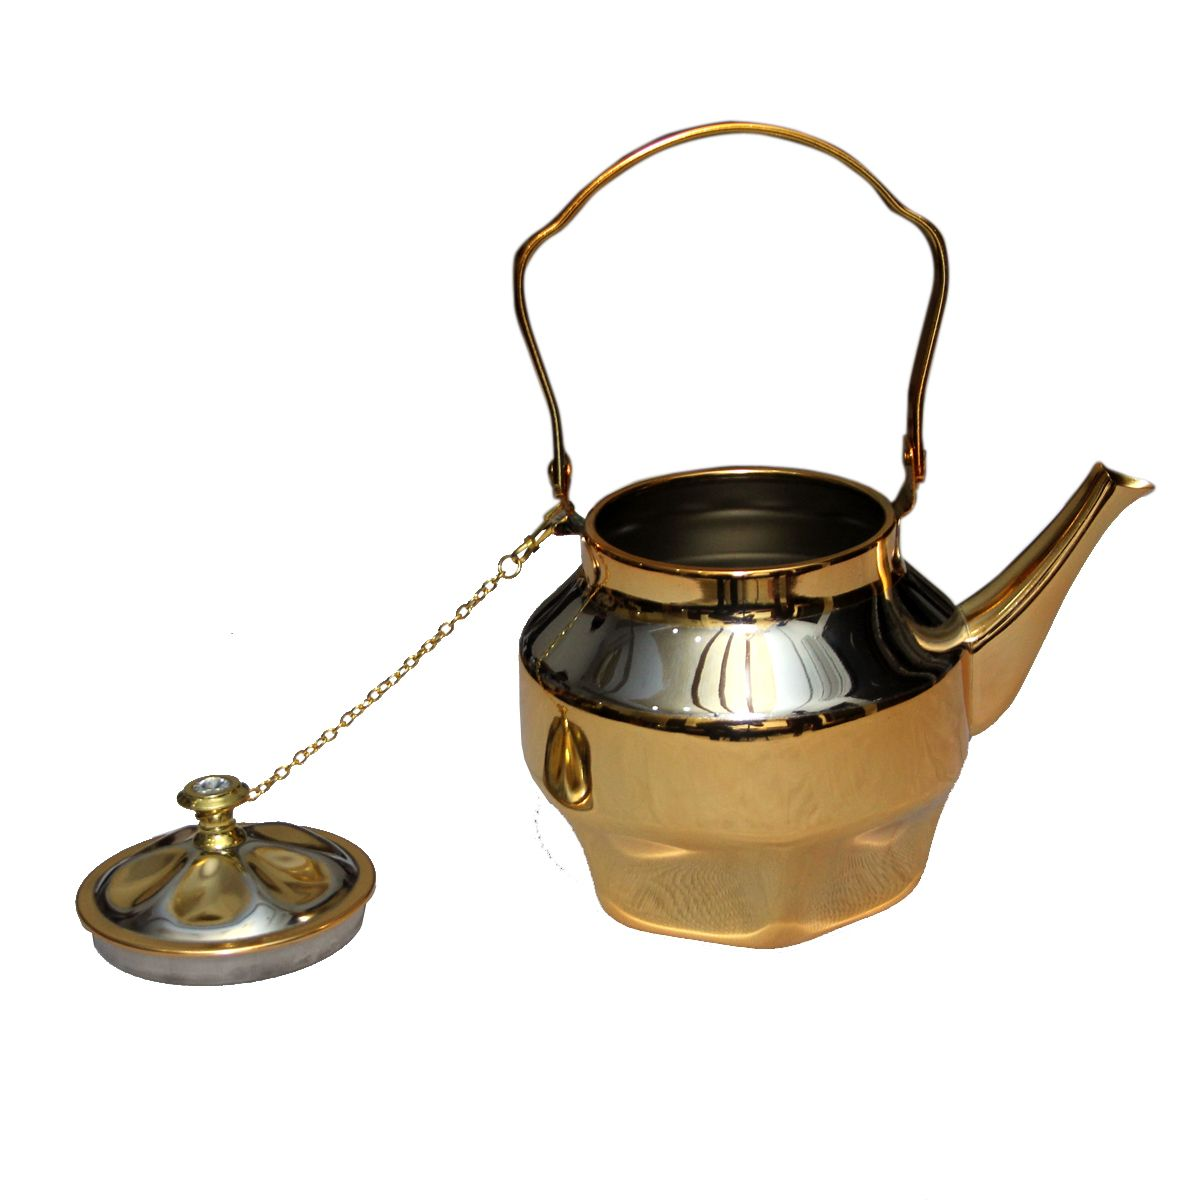 Kuber Industries™ Stainless steel Gold finish/Tea Pot/Serving Pot/ Gold Queen Tea Kettle (Big) Set of 1 Pc (FNT13)